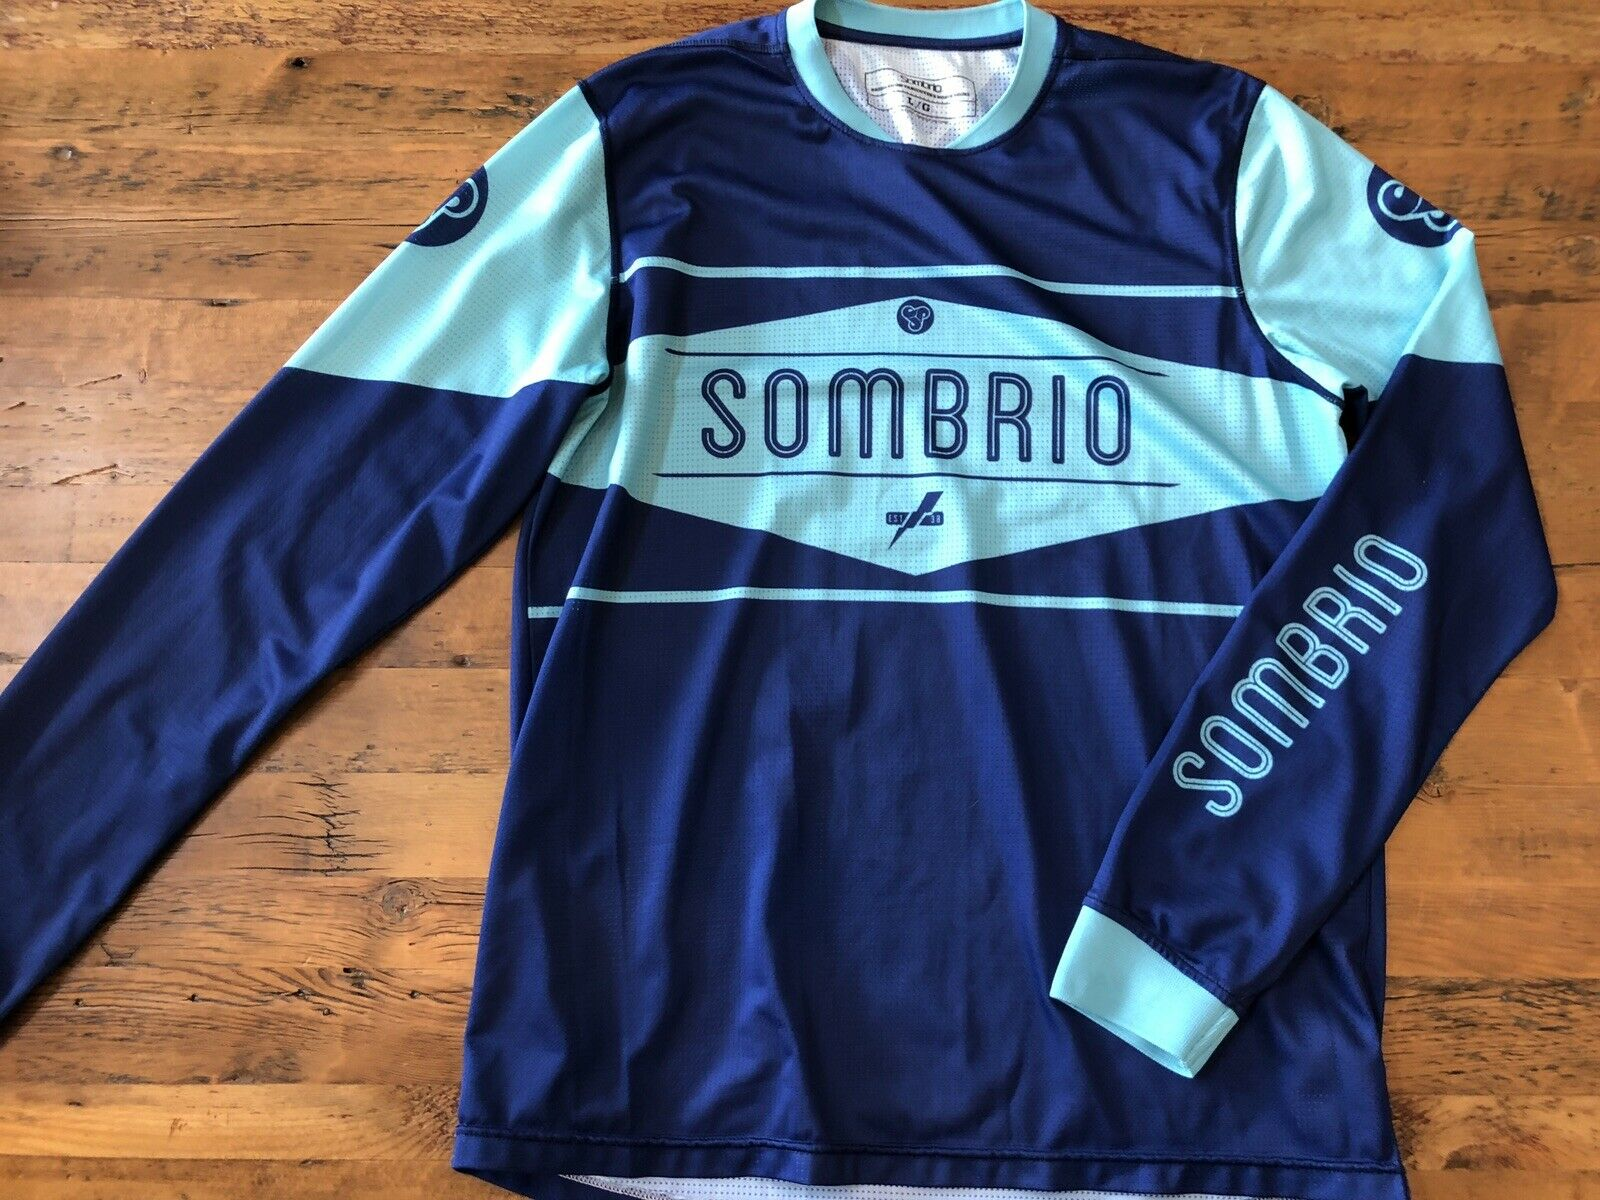 Sombrio Duster Cycling Bike Jersey Mens Large Long Sleeve bluee  on bluee Athletic  new sadie